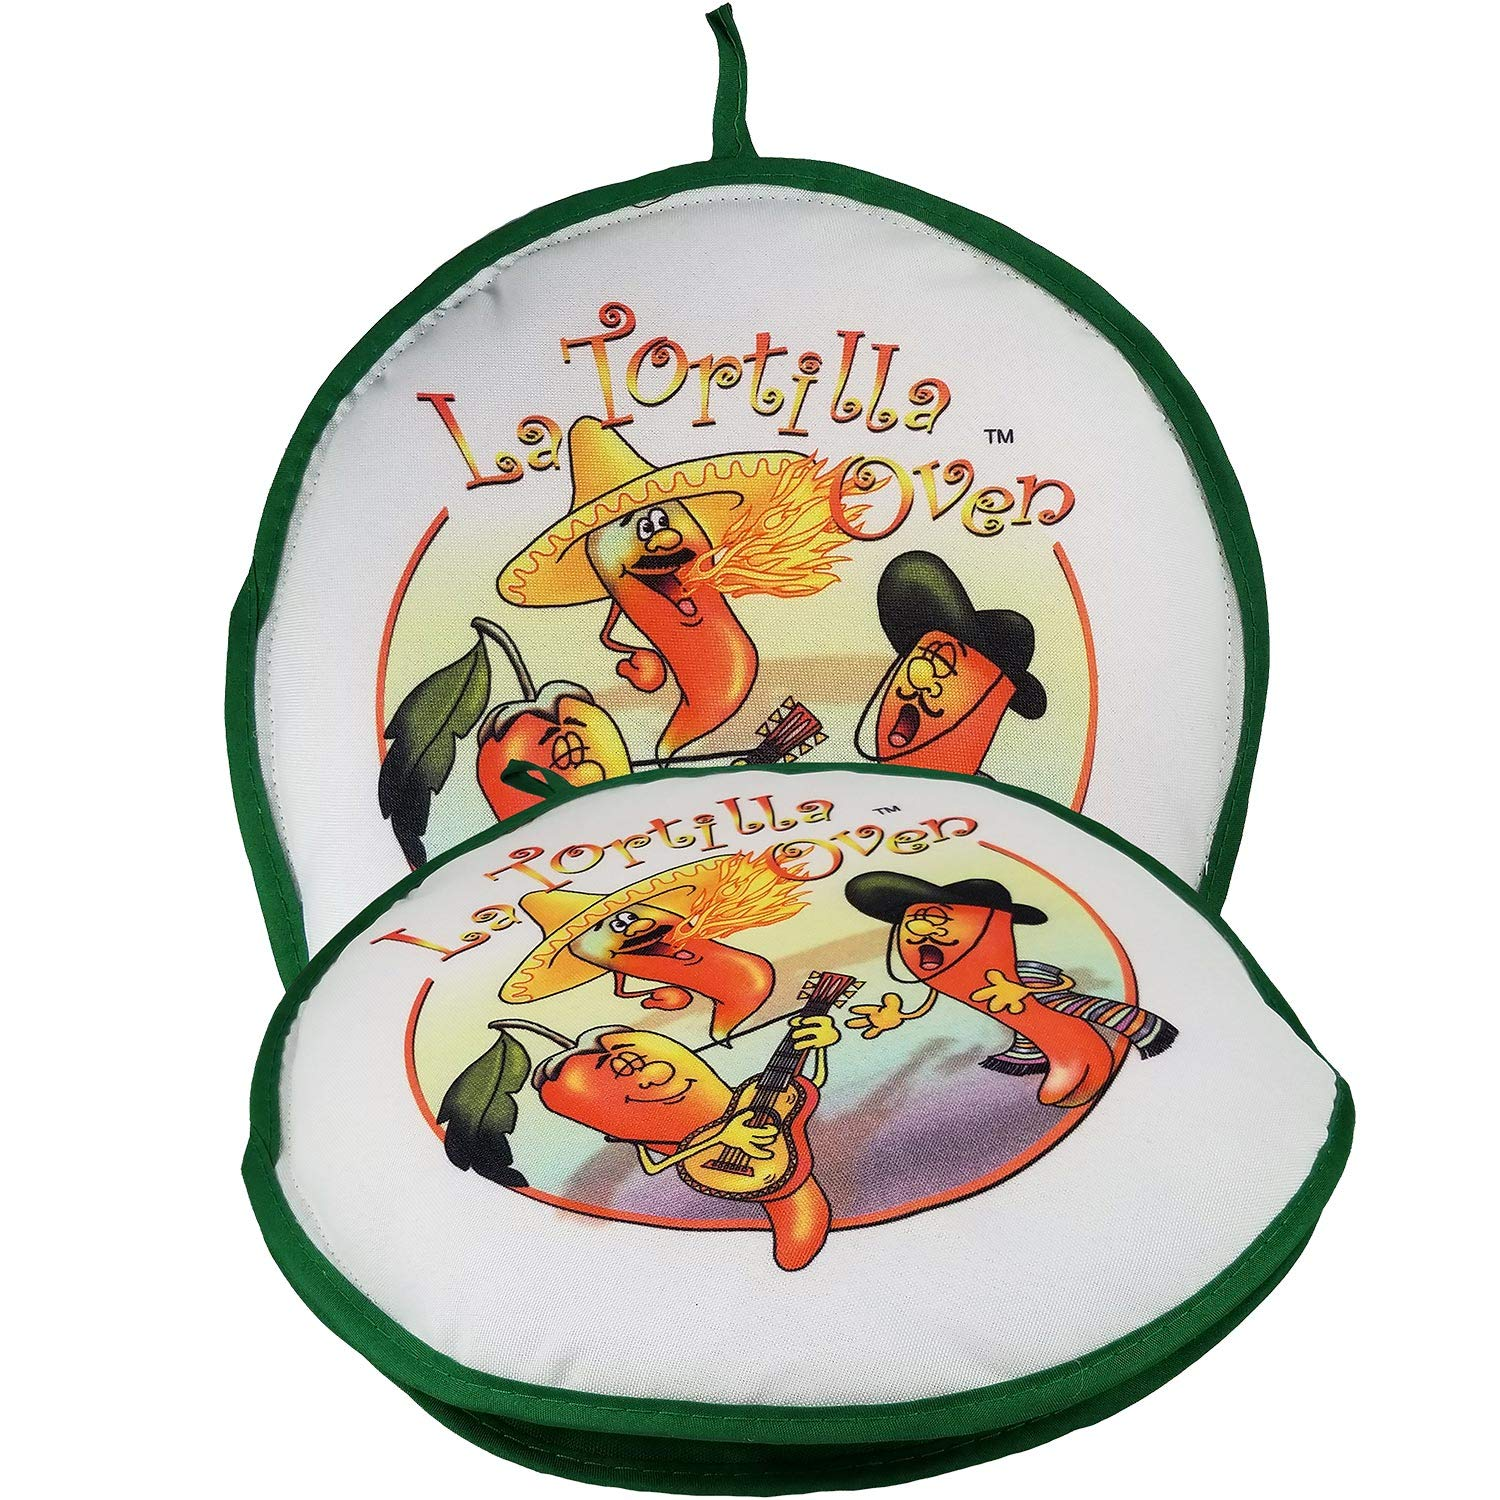 10'' Tortilla Warmer Keeps Tortillas FRESH AND WARM FOR OVER 1 HOUR! Singing peppers tortilla pouch keeps corn & flour tortillas warm from the skillet, pan, grill or microwave!